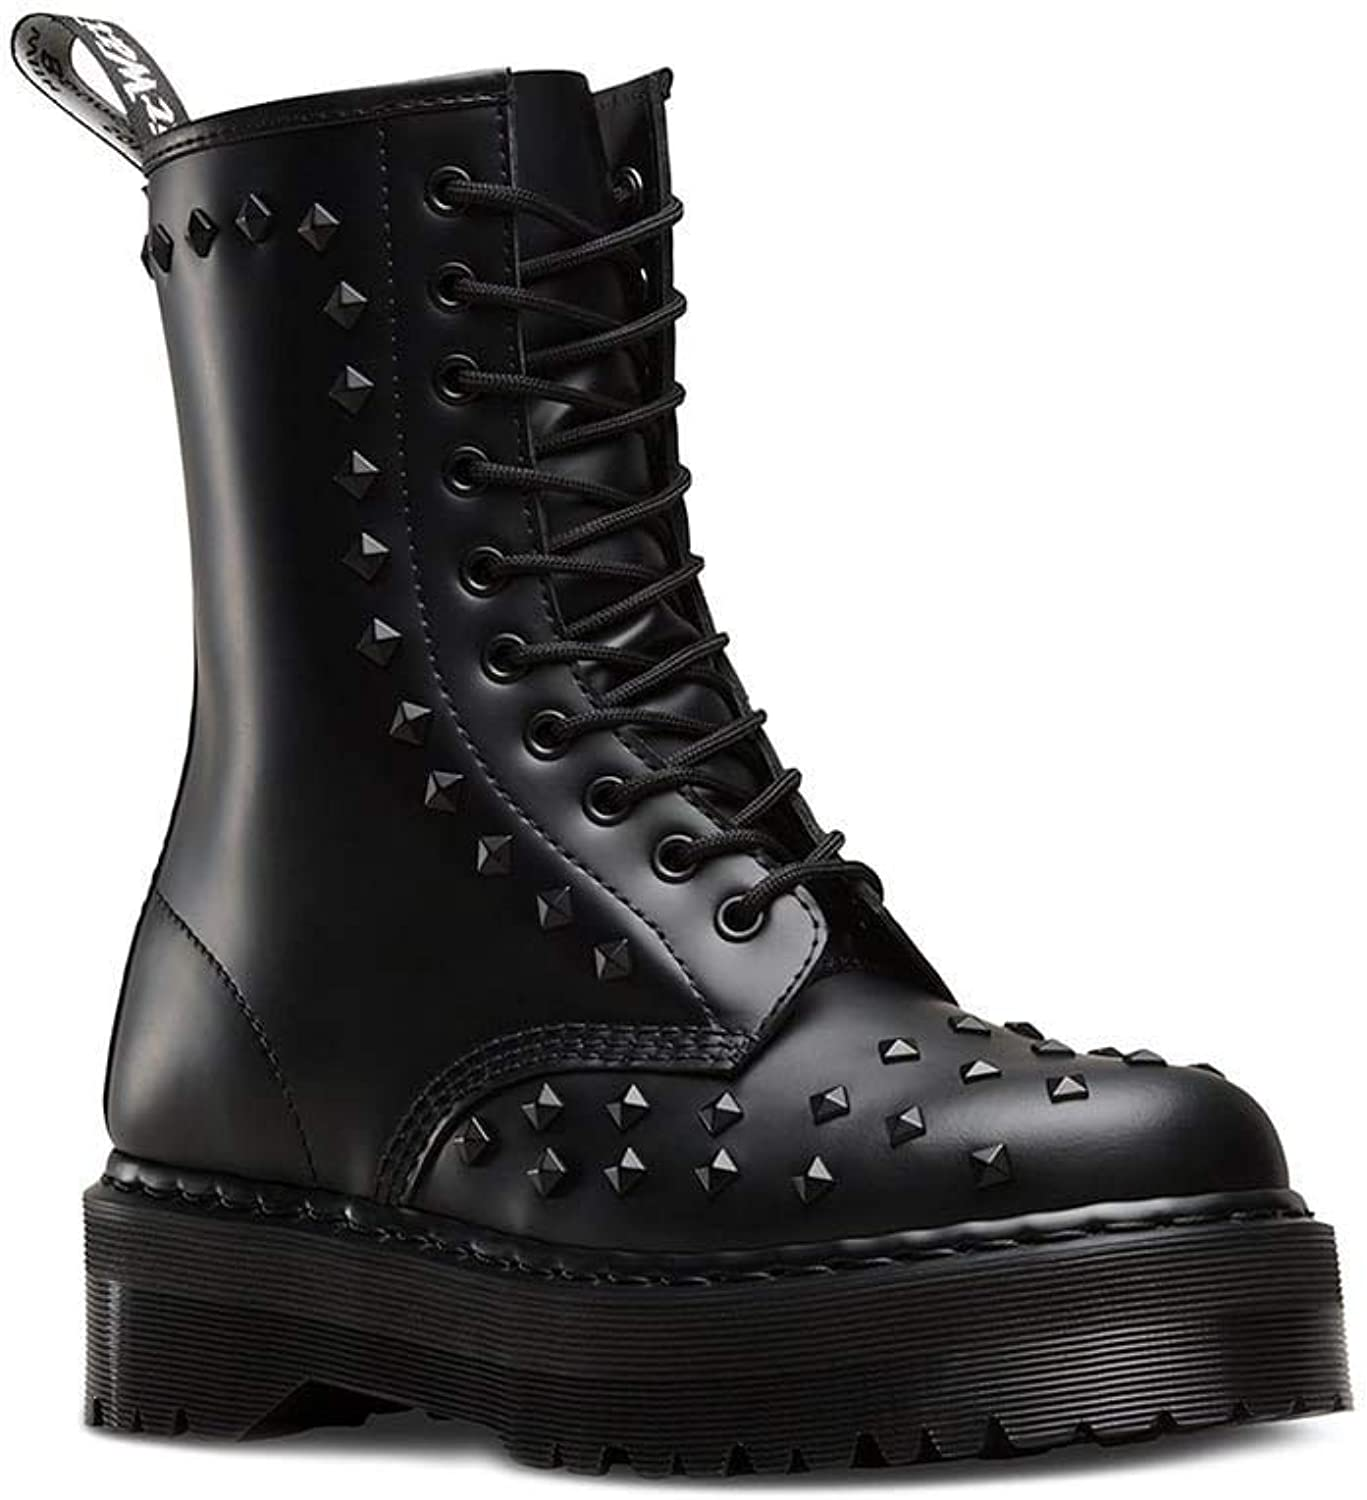 Dr.Martens Womens 1490 Stud 10-Eyelet Leather Boots